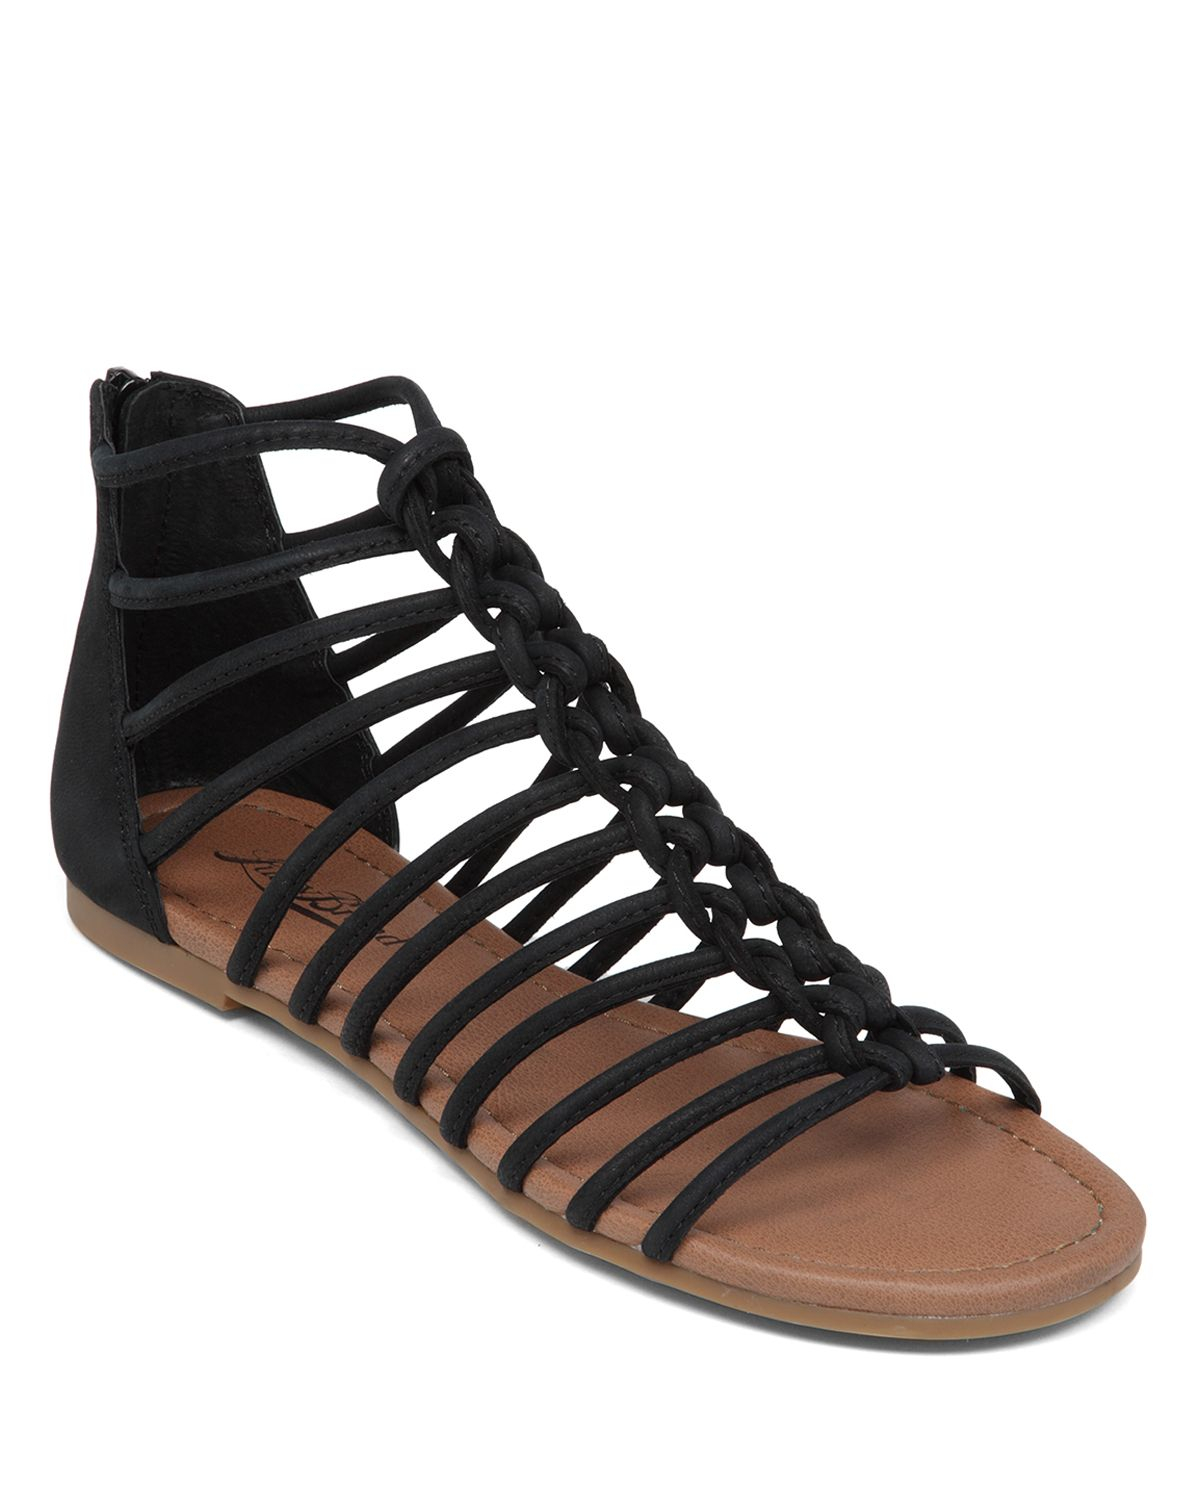 Lyst - Lucky Brand Flat Sandals - Casmett Caged In Black